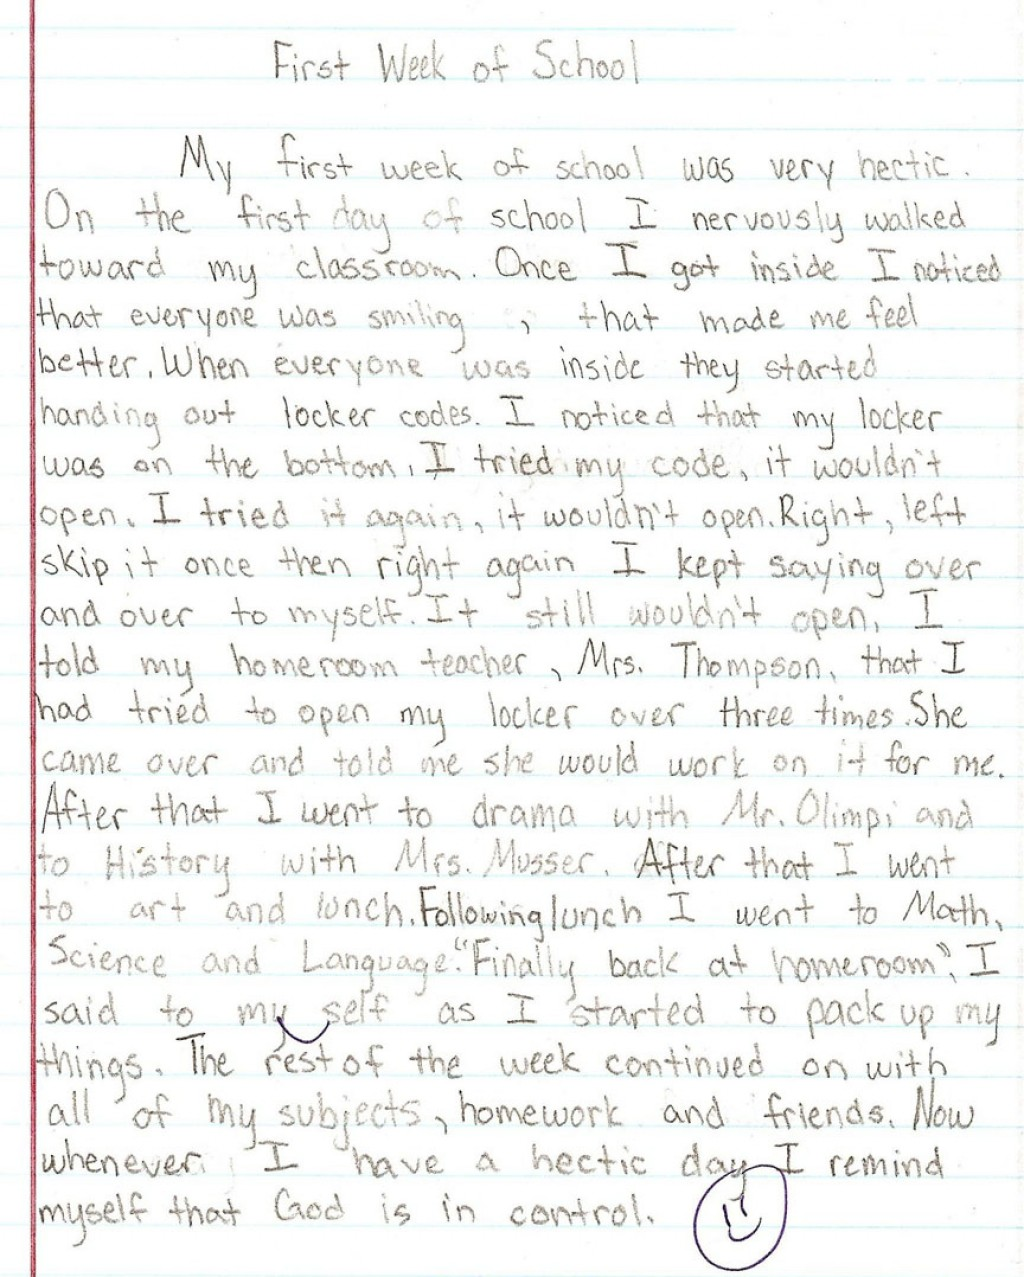 005 Sample1a Essay Example 6th Grade Surprising Topics Reflective Narrative Writing Prompts Science Large